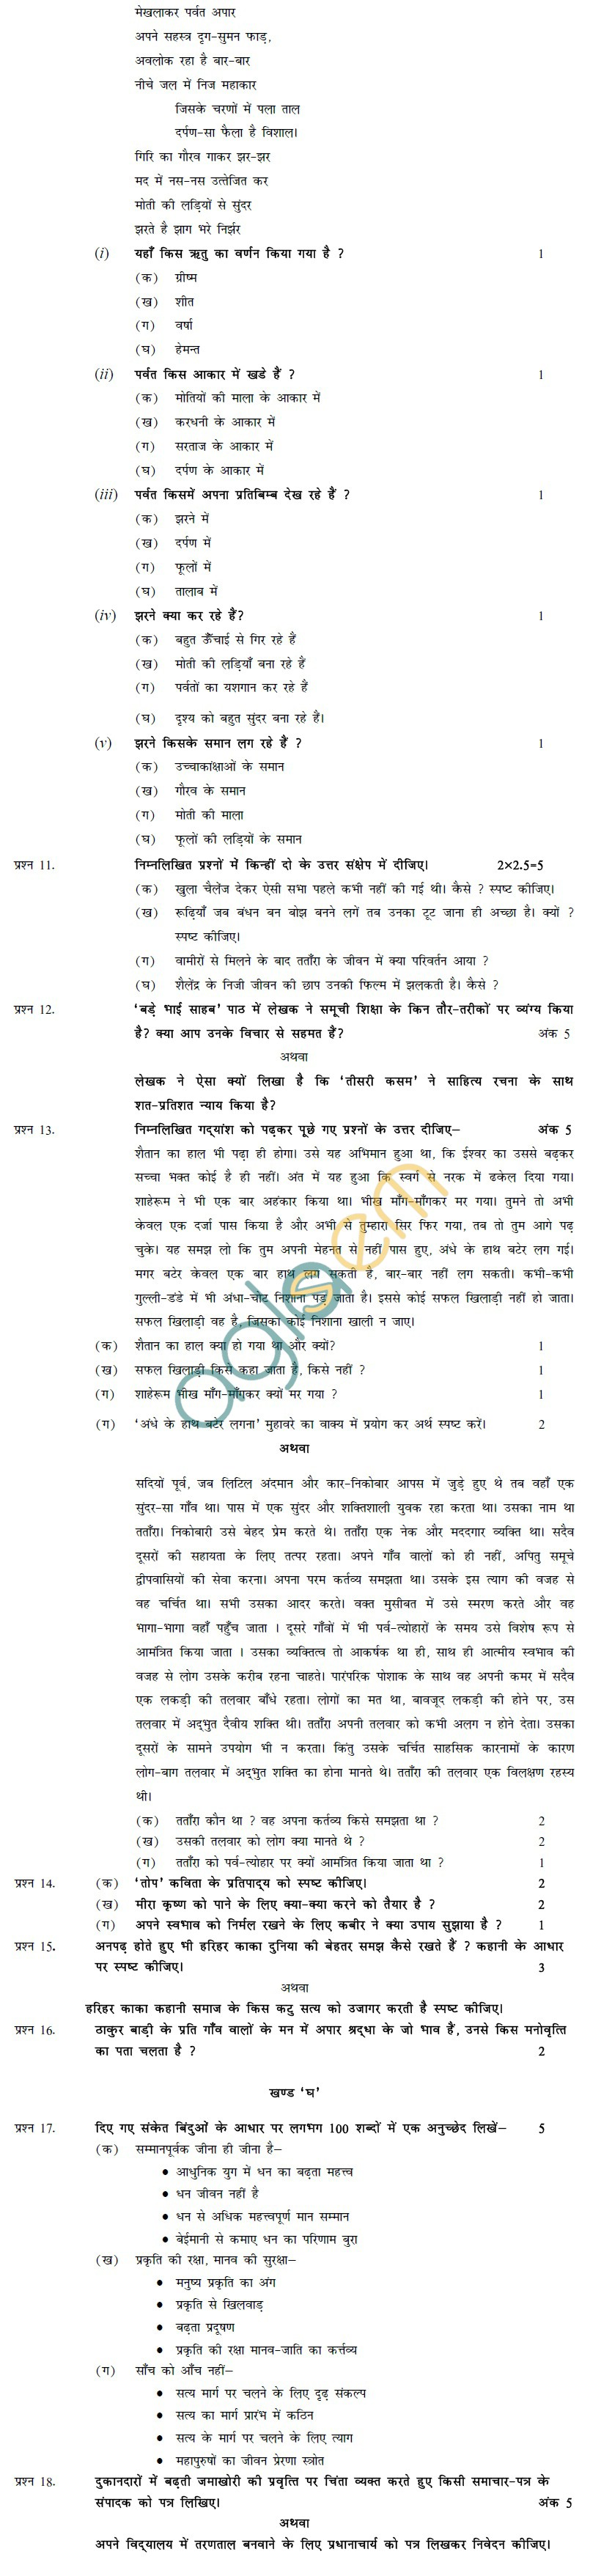 100 essay topics hindi for class 9 cbse 2012 sa1 solved paper